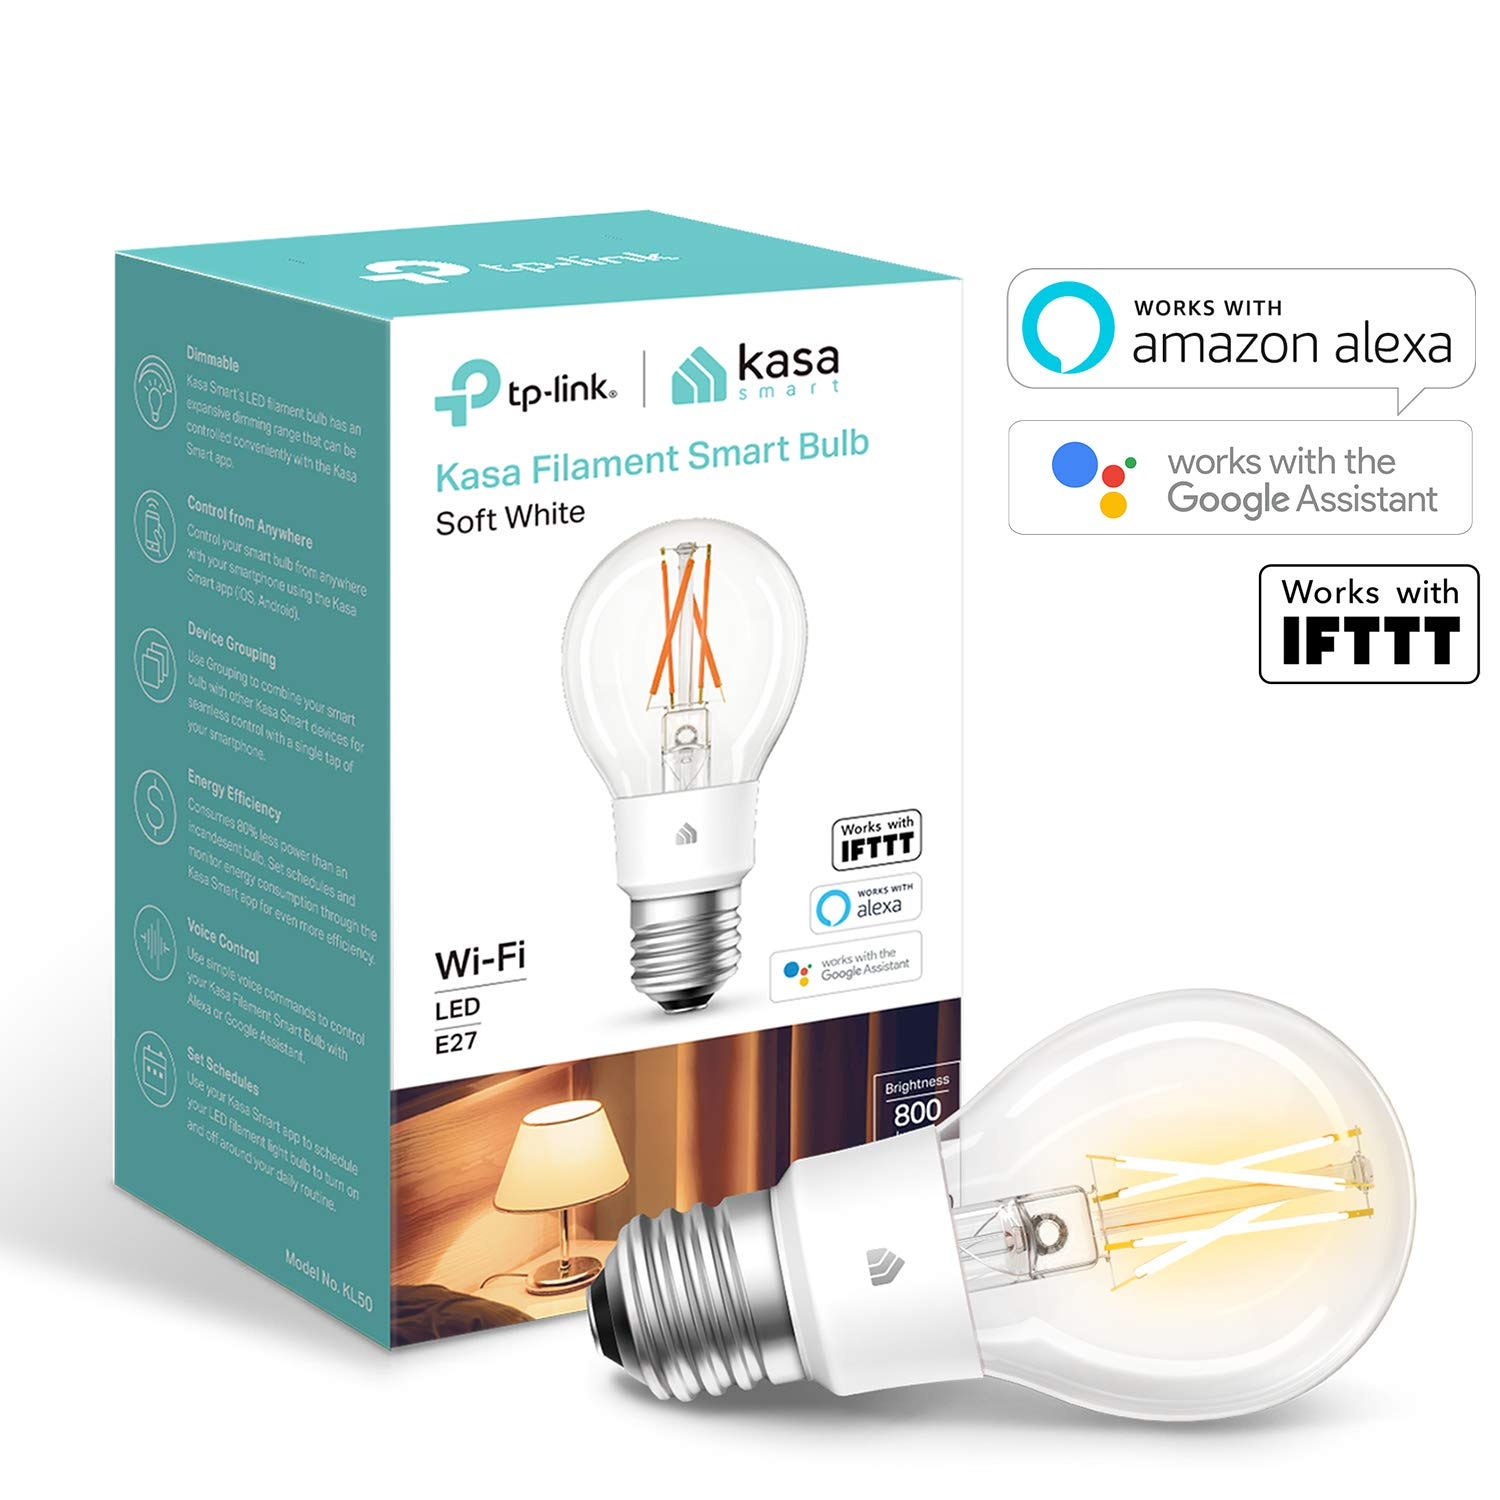 TP-Link Smart Bulb, WiFi Filament Light Bulb, E27, 7W, Works with Amazon Alexa